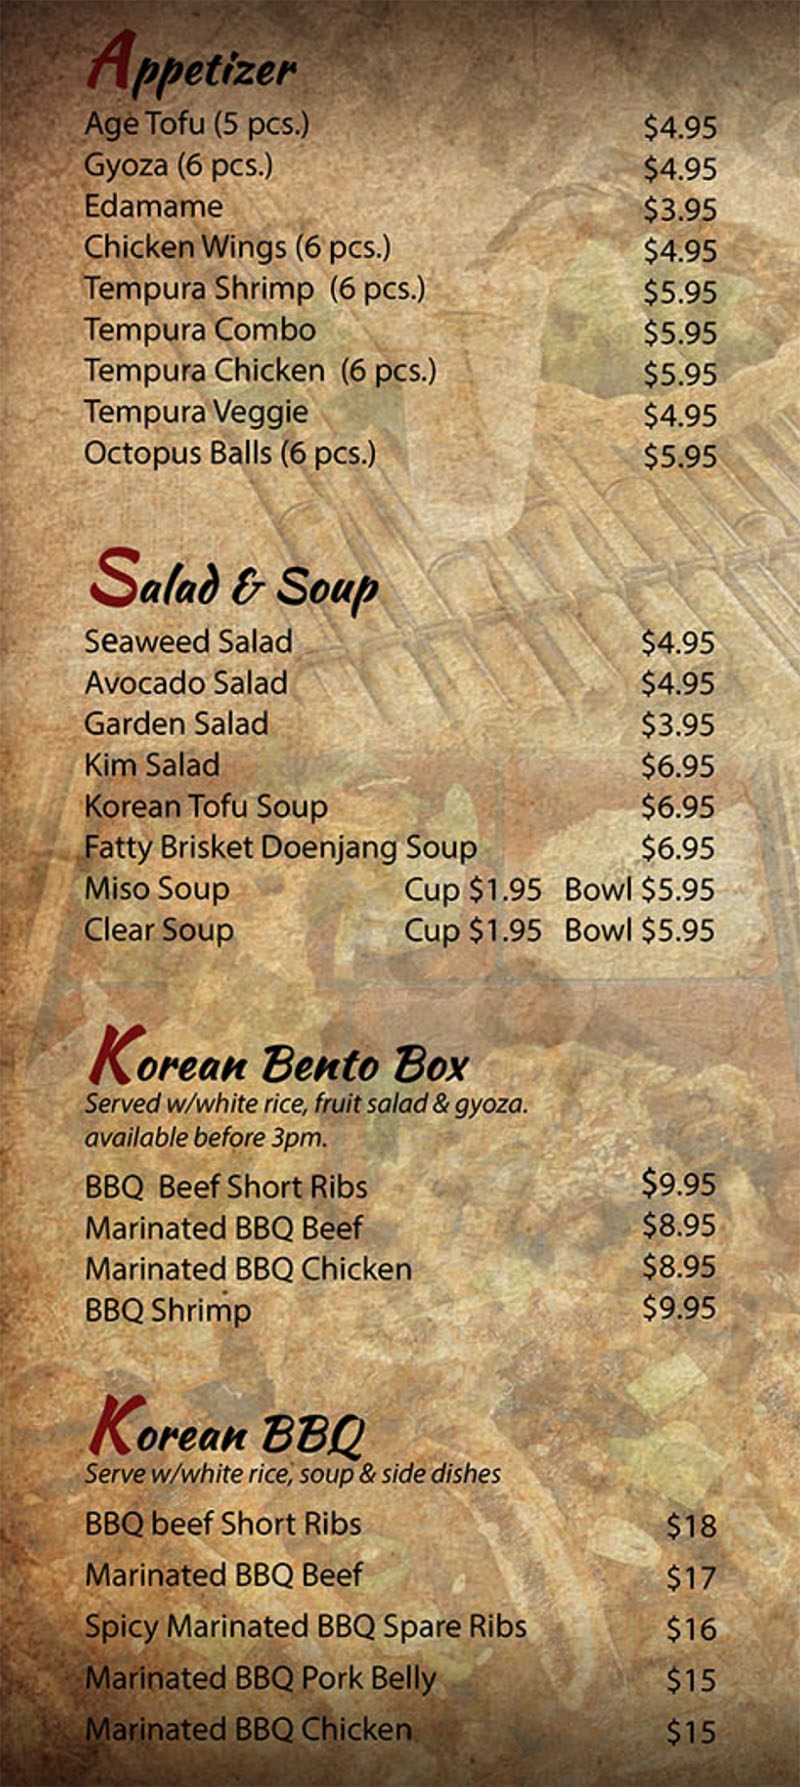 Kim Korean House And Sushi Bar menu - appetizer, soup, salads, Korean bento, Korean BBQ